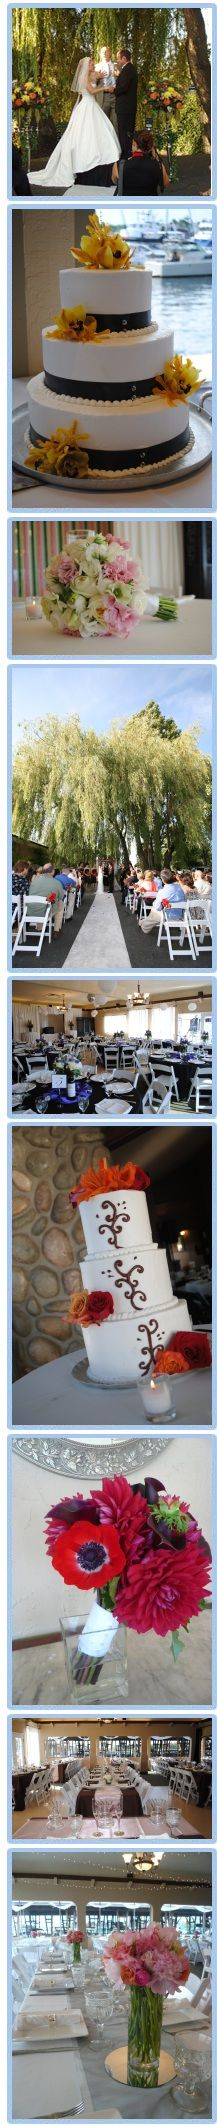 Blue Ribbon Cooking & Culinary Center with Blue Ribbon All-Inclusive Weddings